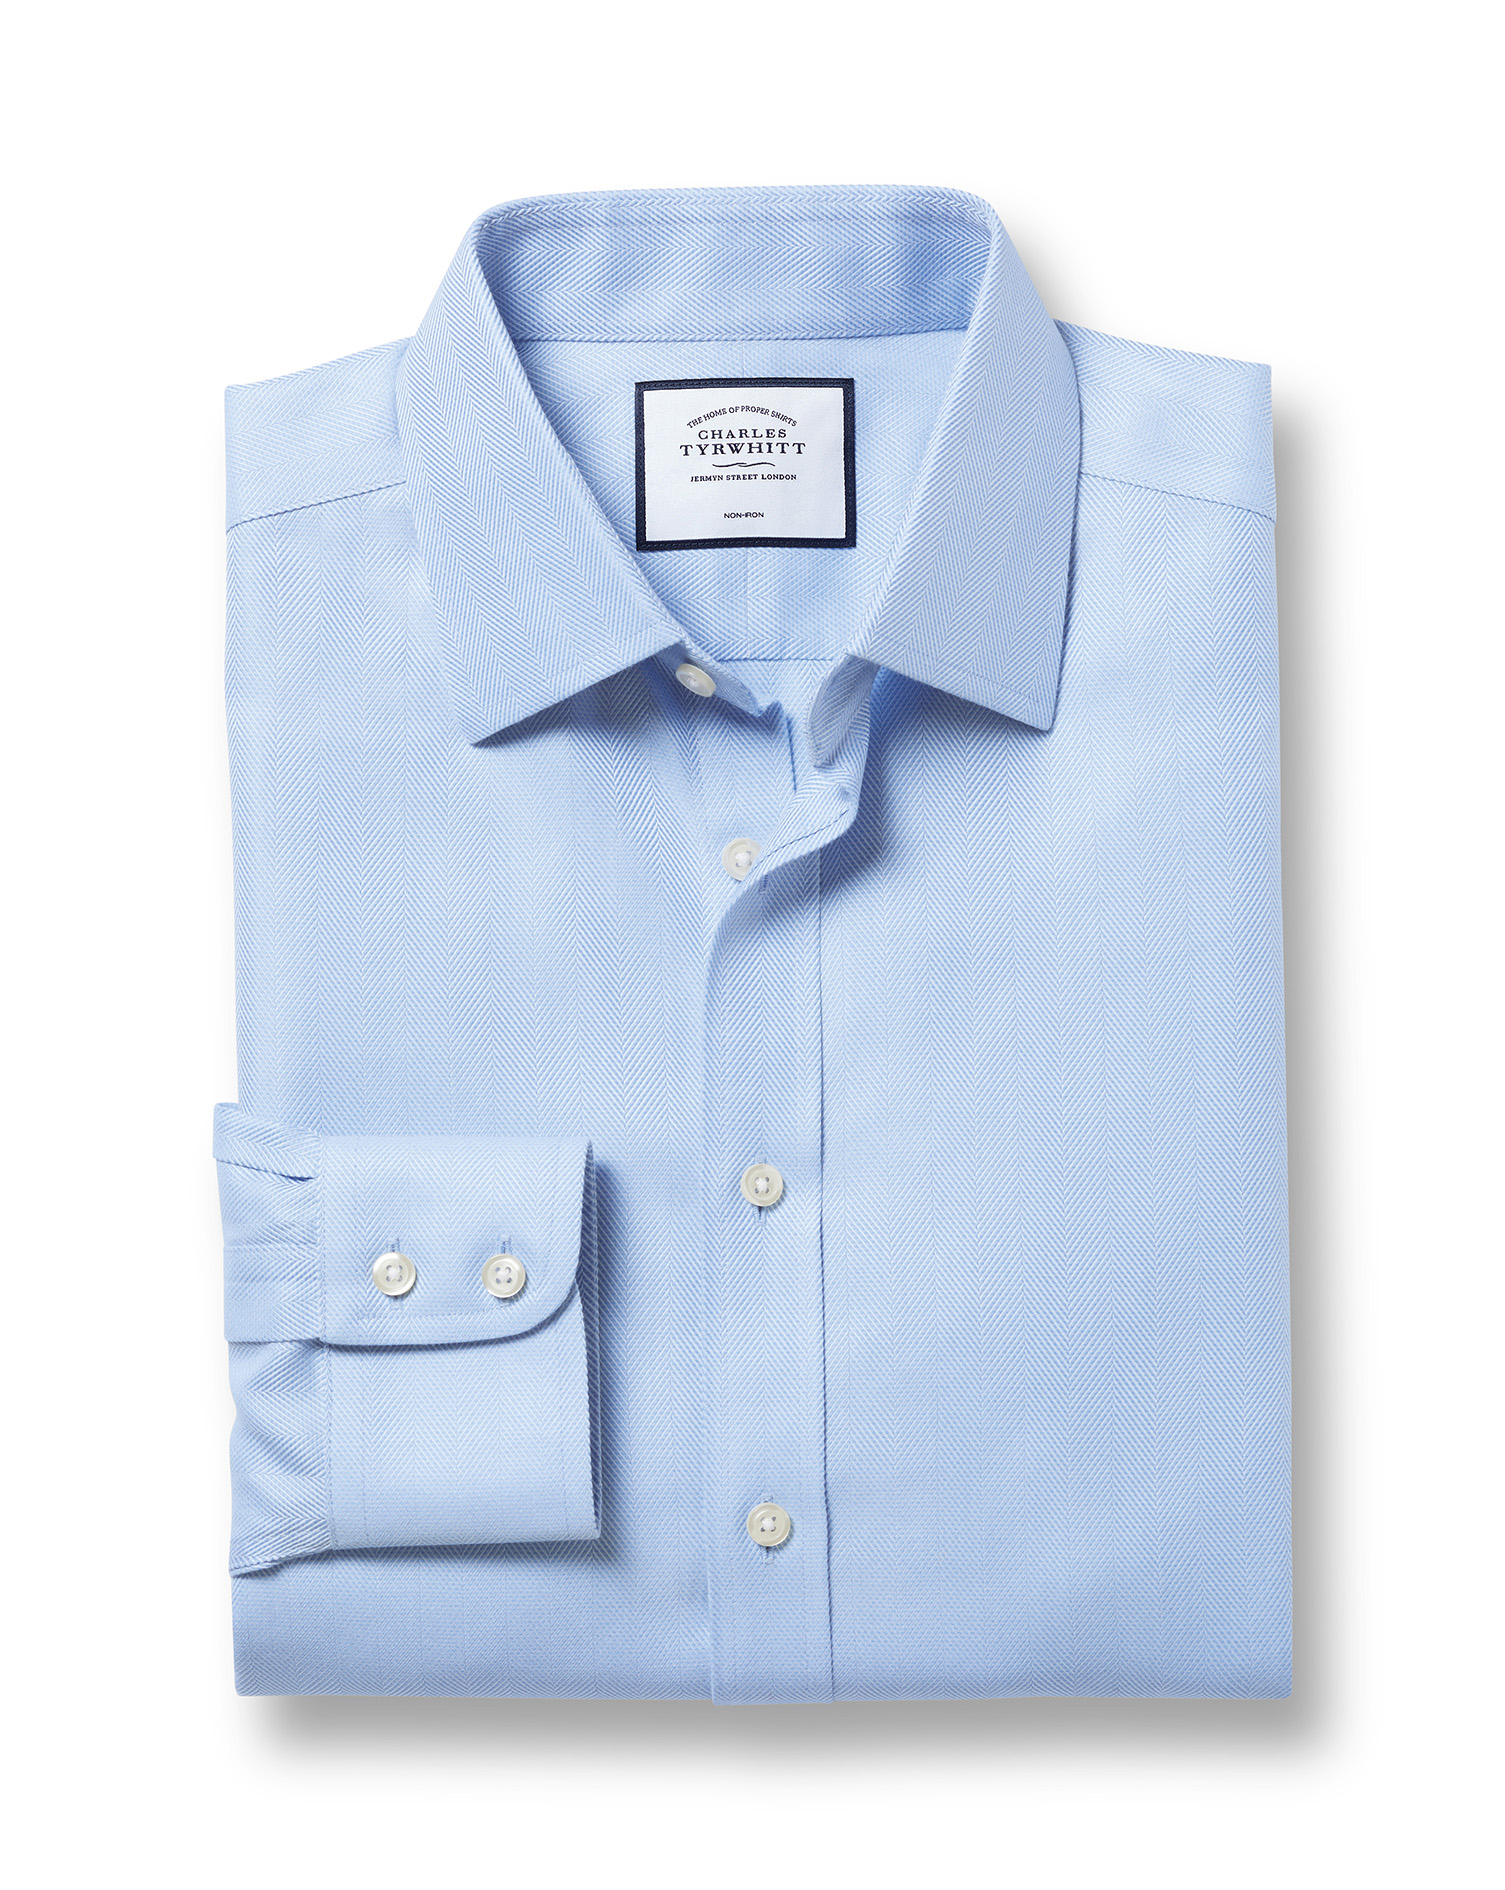 Classic Fit Non-Iron Herringbone Sky Blue Cotton Formal Shirt Double Cuff Size 17.5/36 by Charles Ty